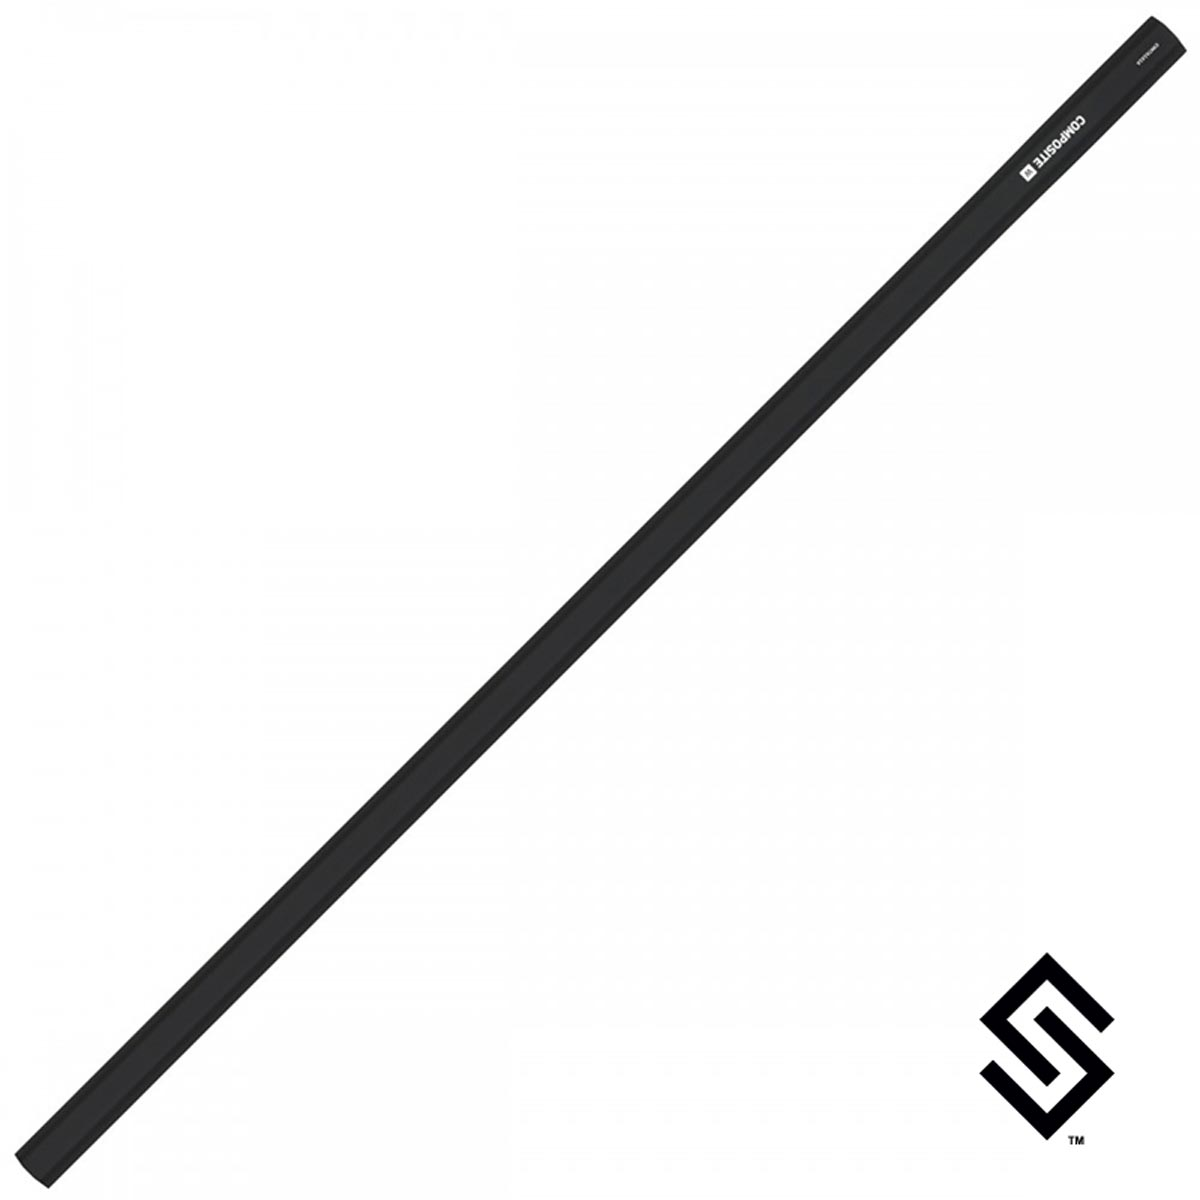 StringKing Composite Women's Lacrosse Shaft Black